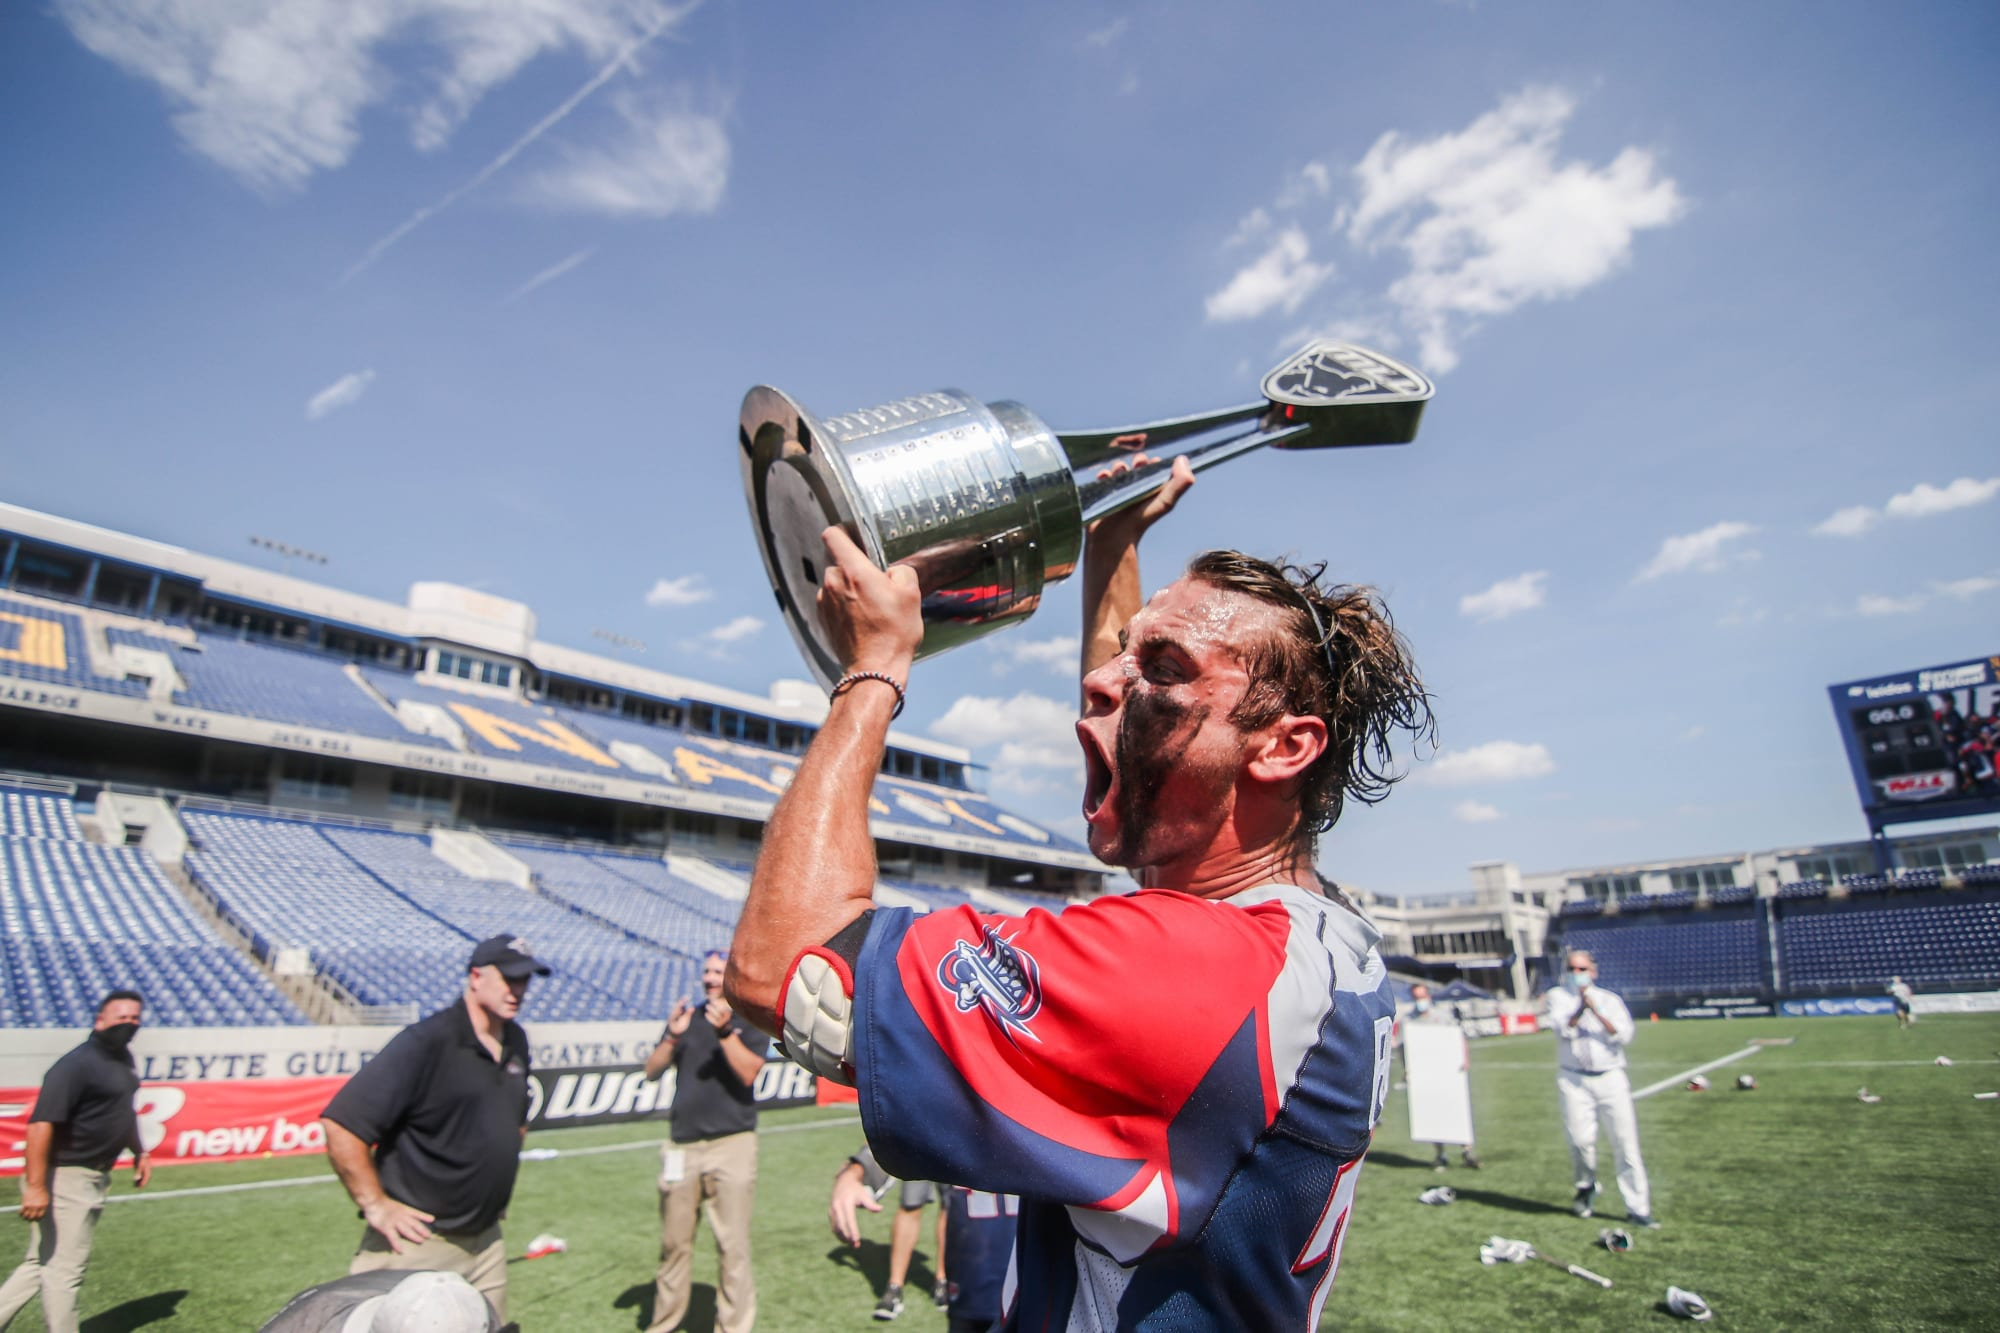 Boston Cannons Proves Best in 2020 MLL Championship